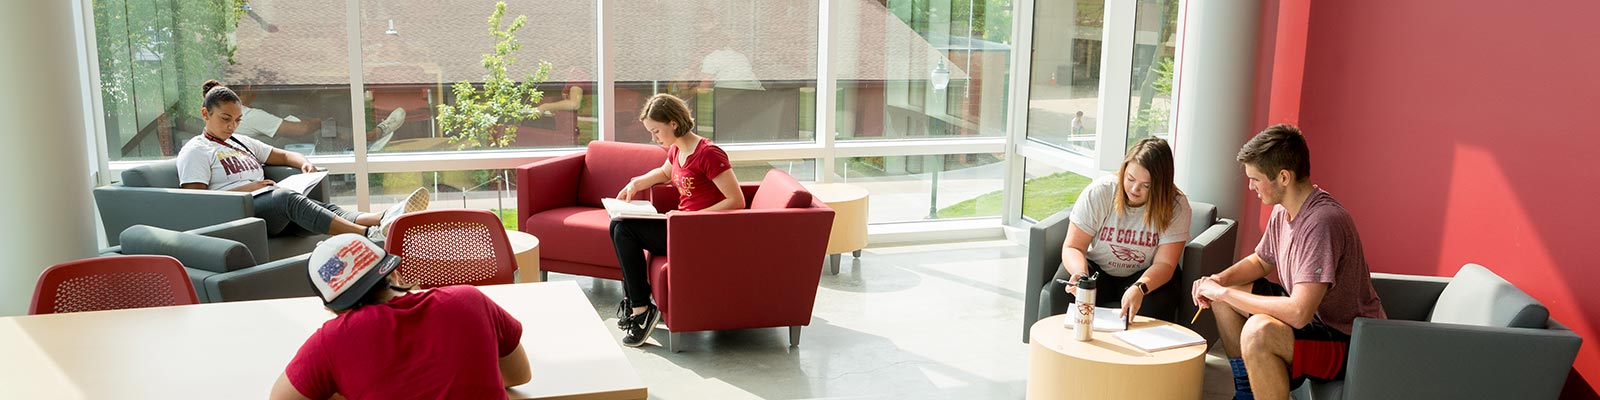 Coe students studying in a gathering space